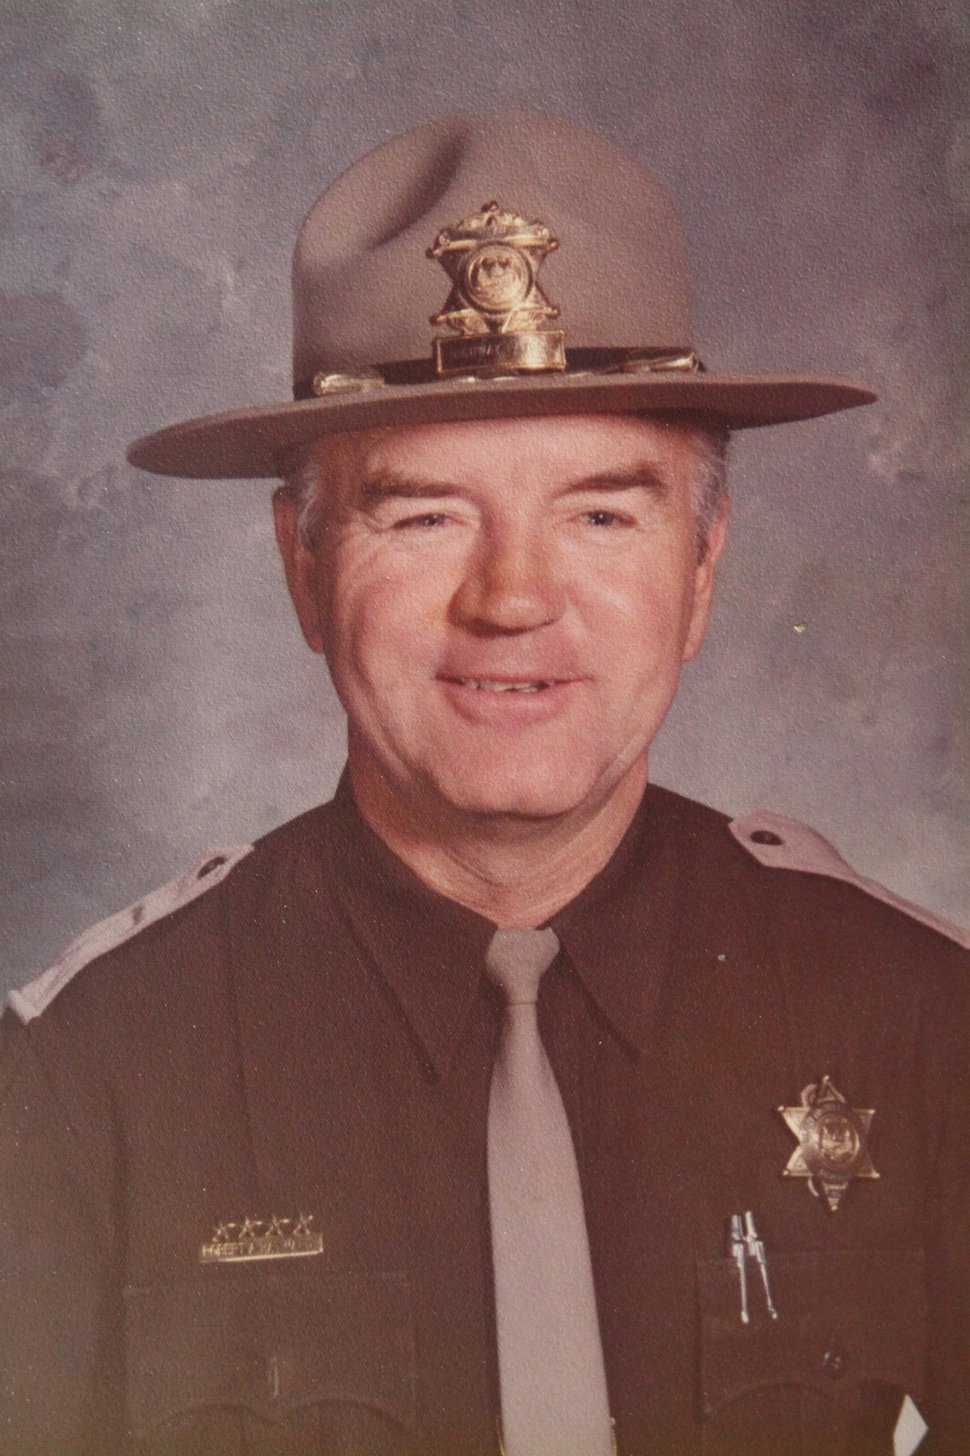 Utah Highway Patrol trooper Robert